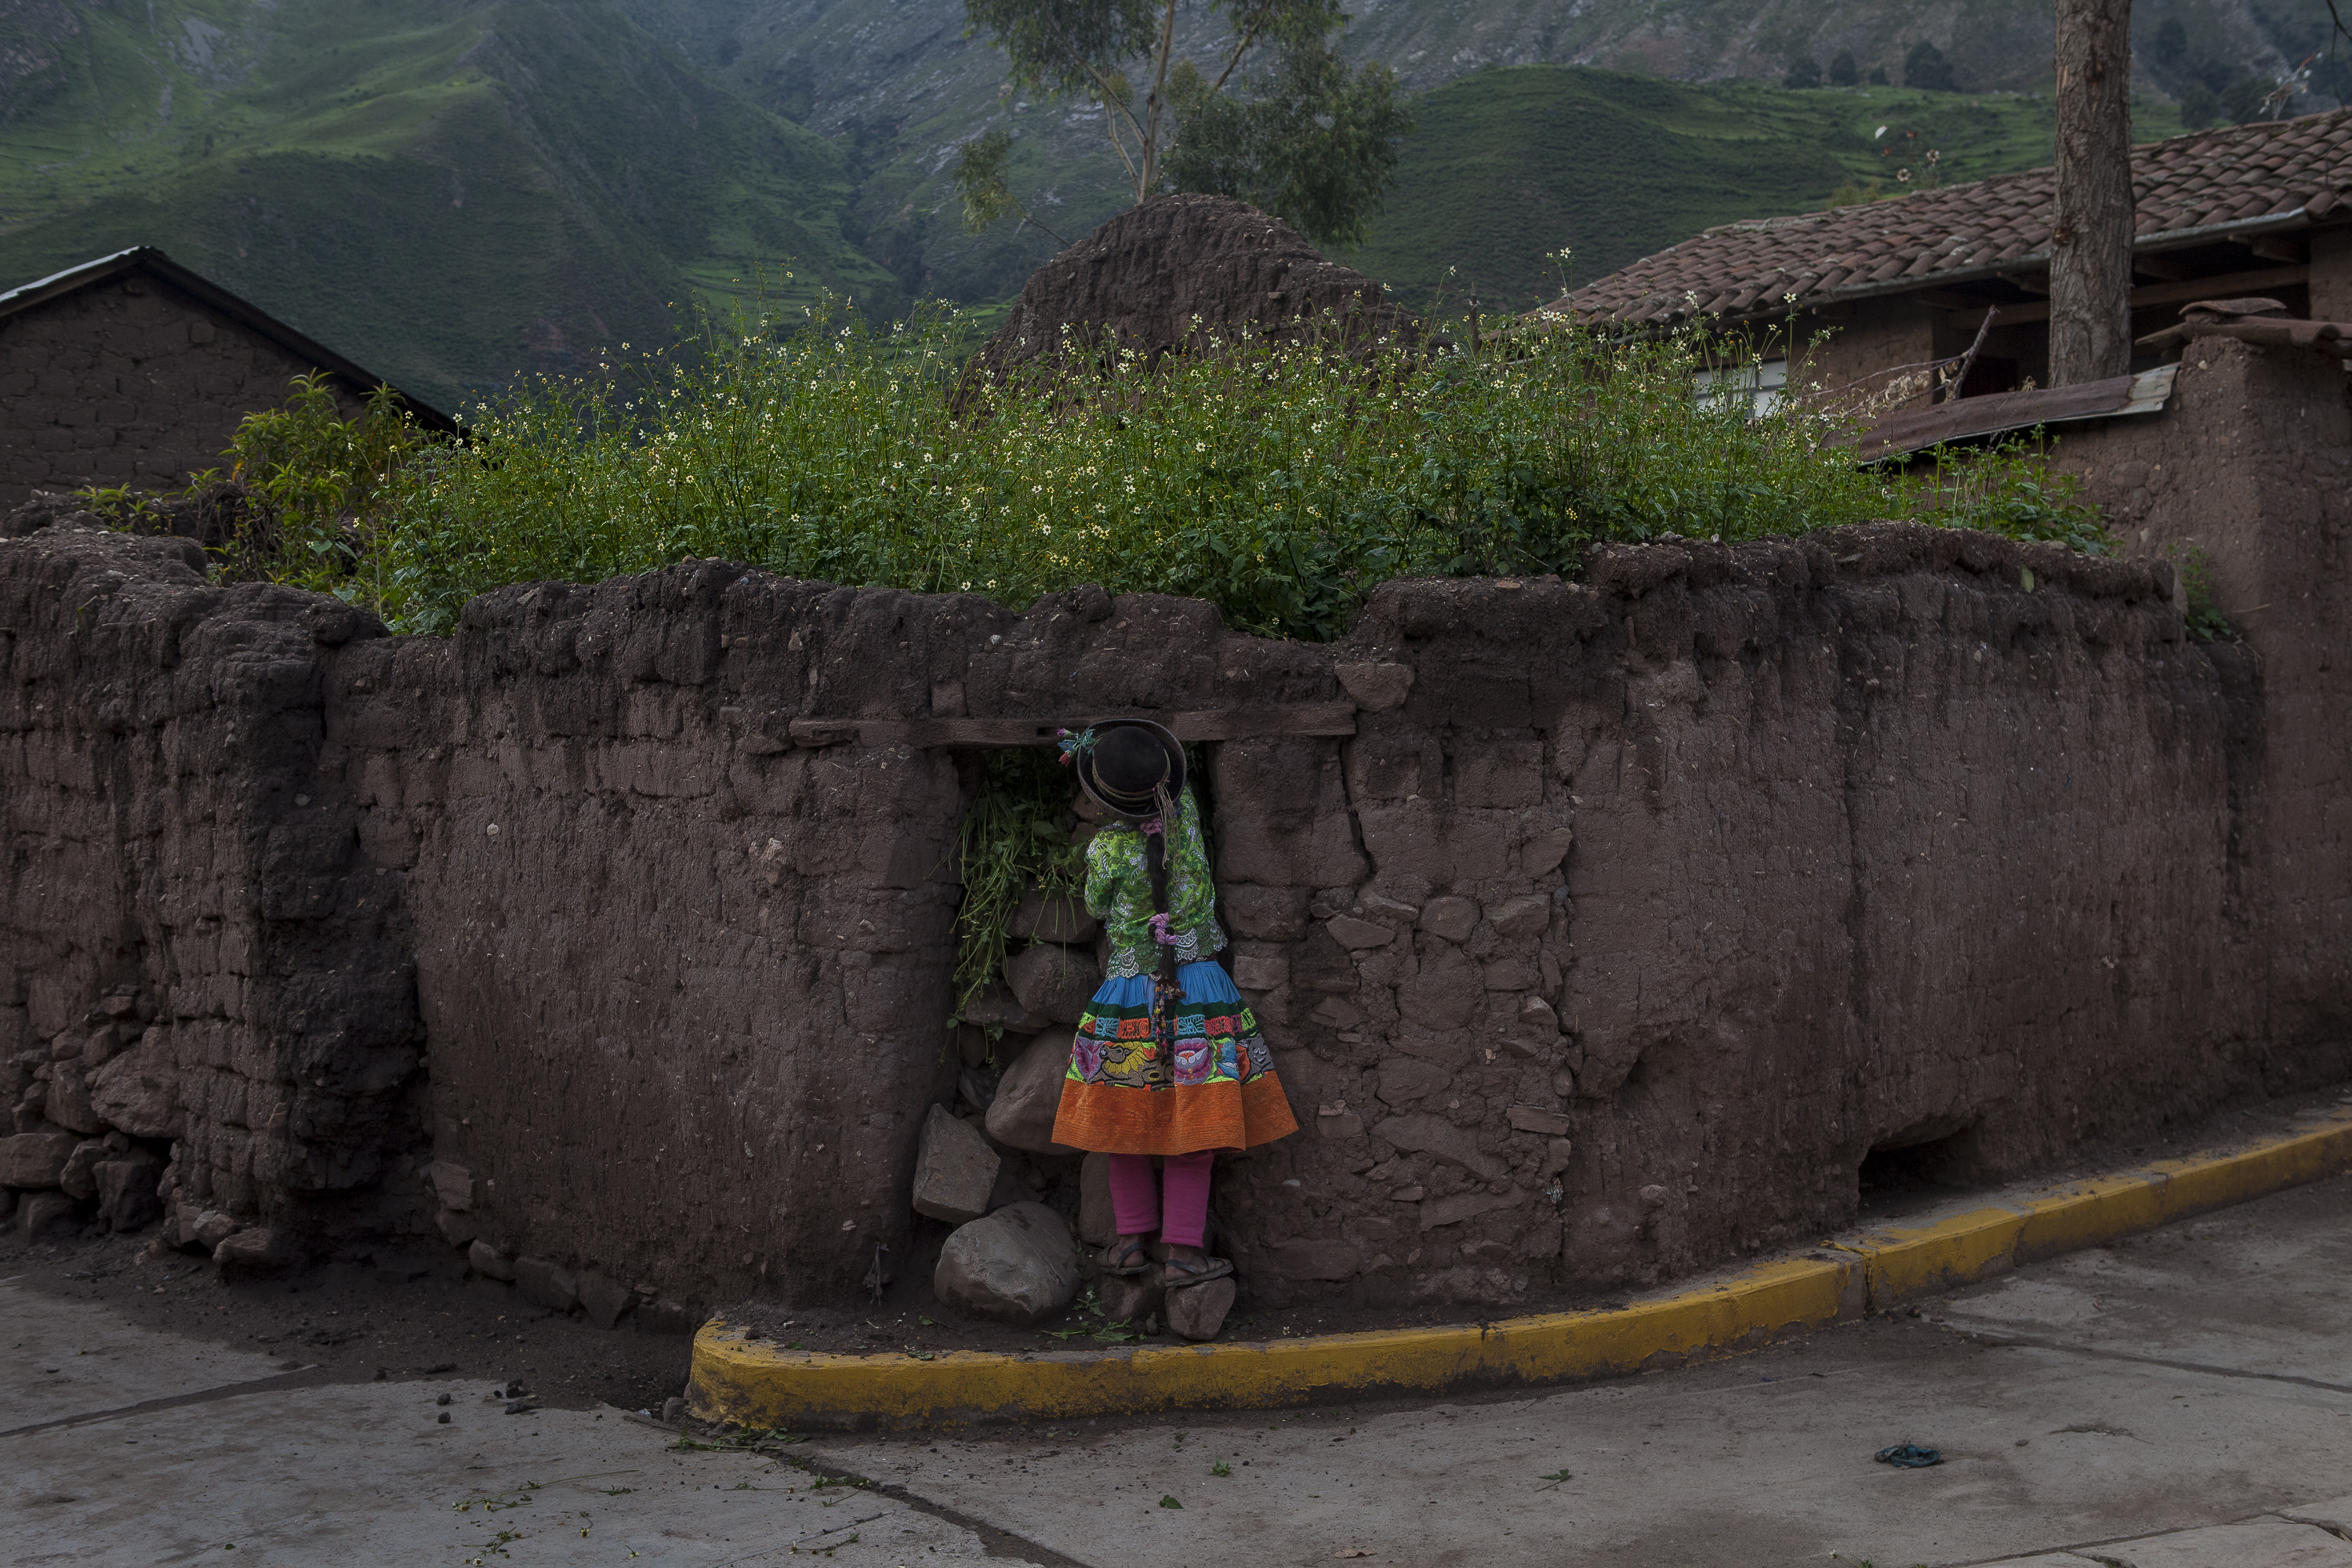 The district of Sarhua sits at 3,000 meters in the Peruvian Andes.